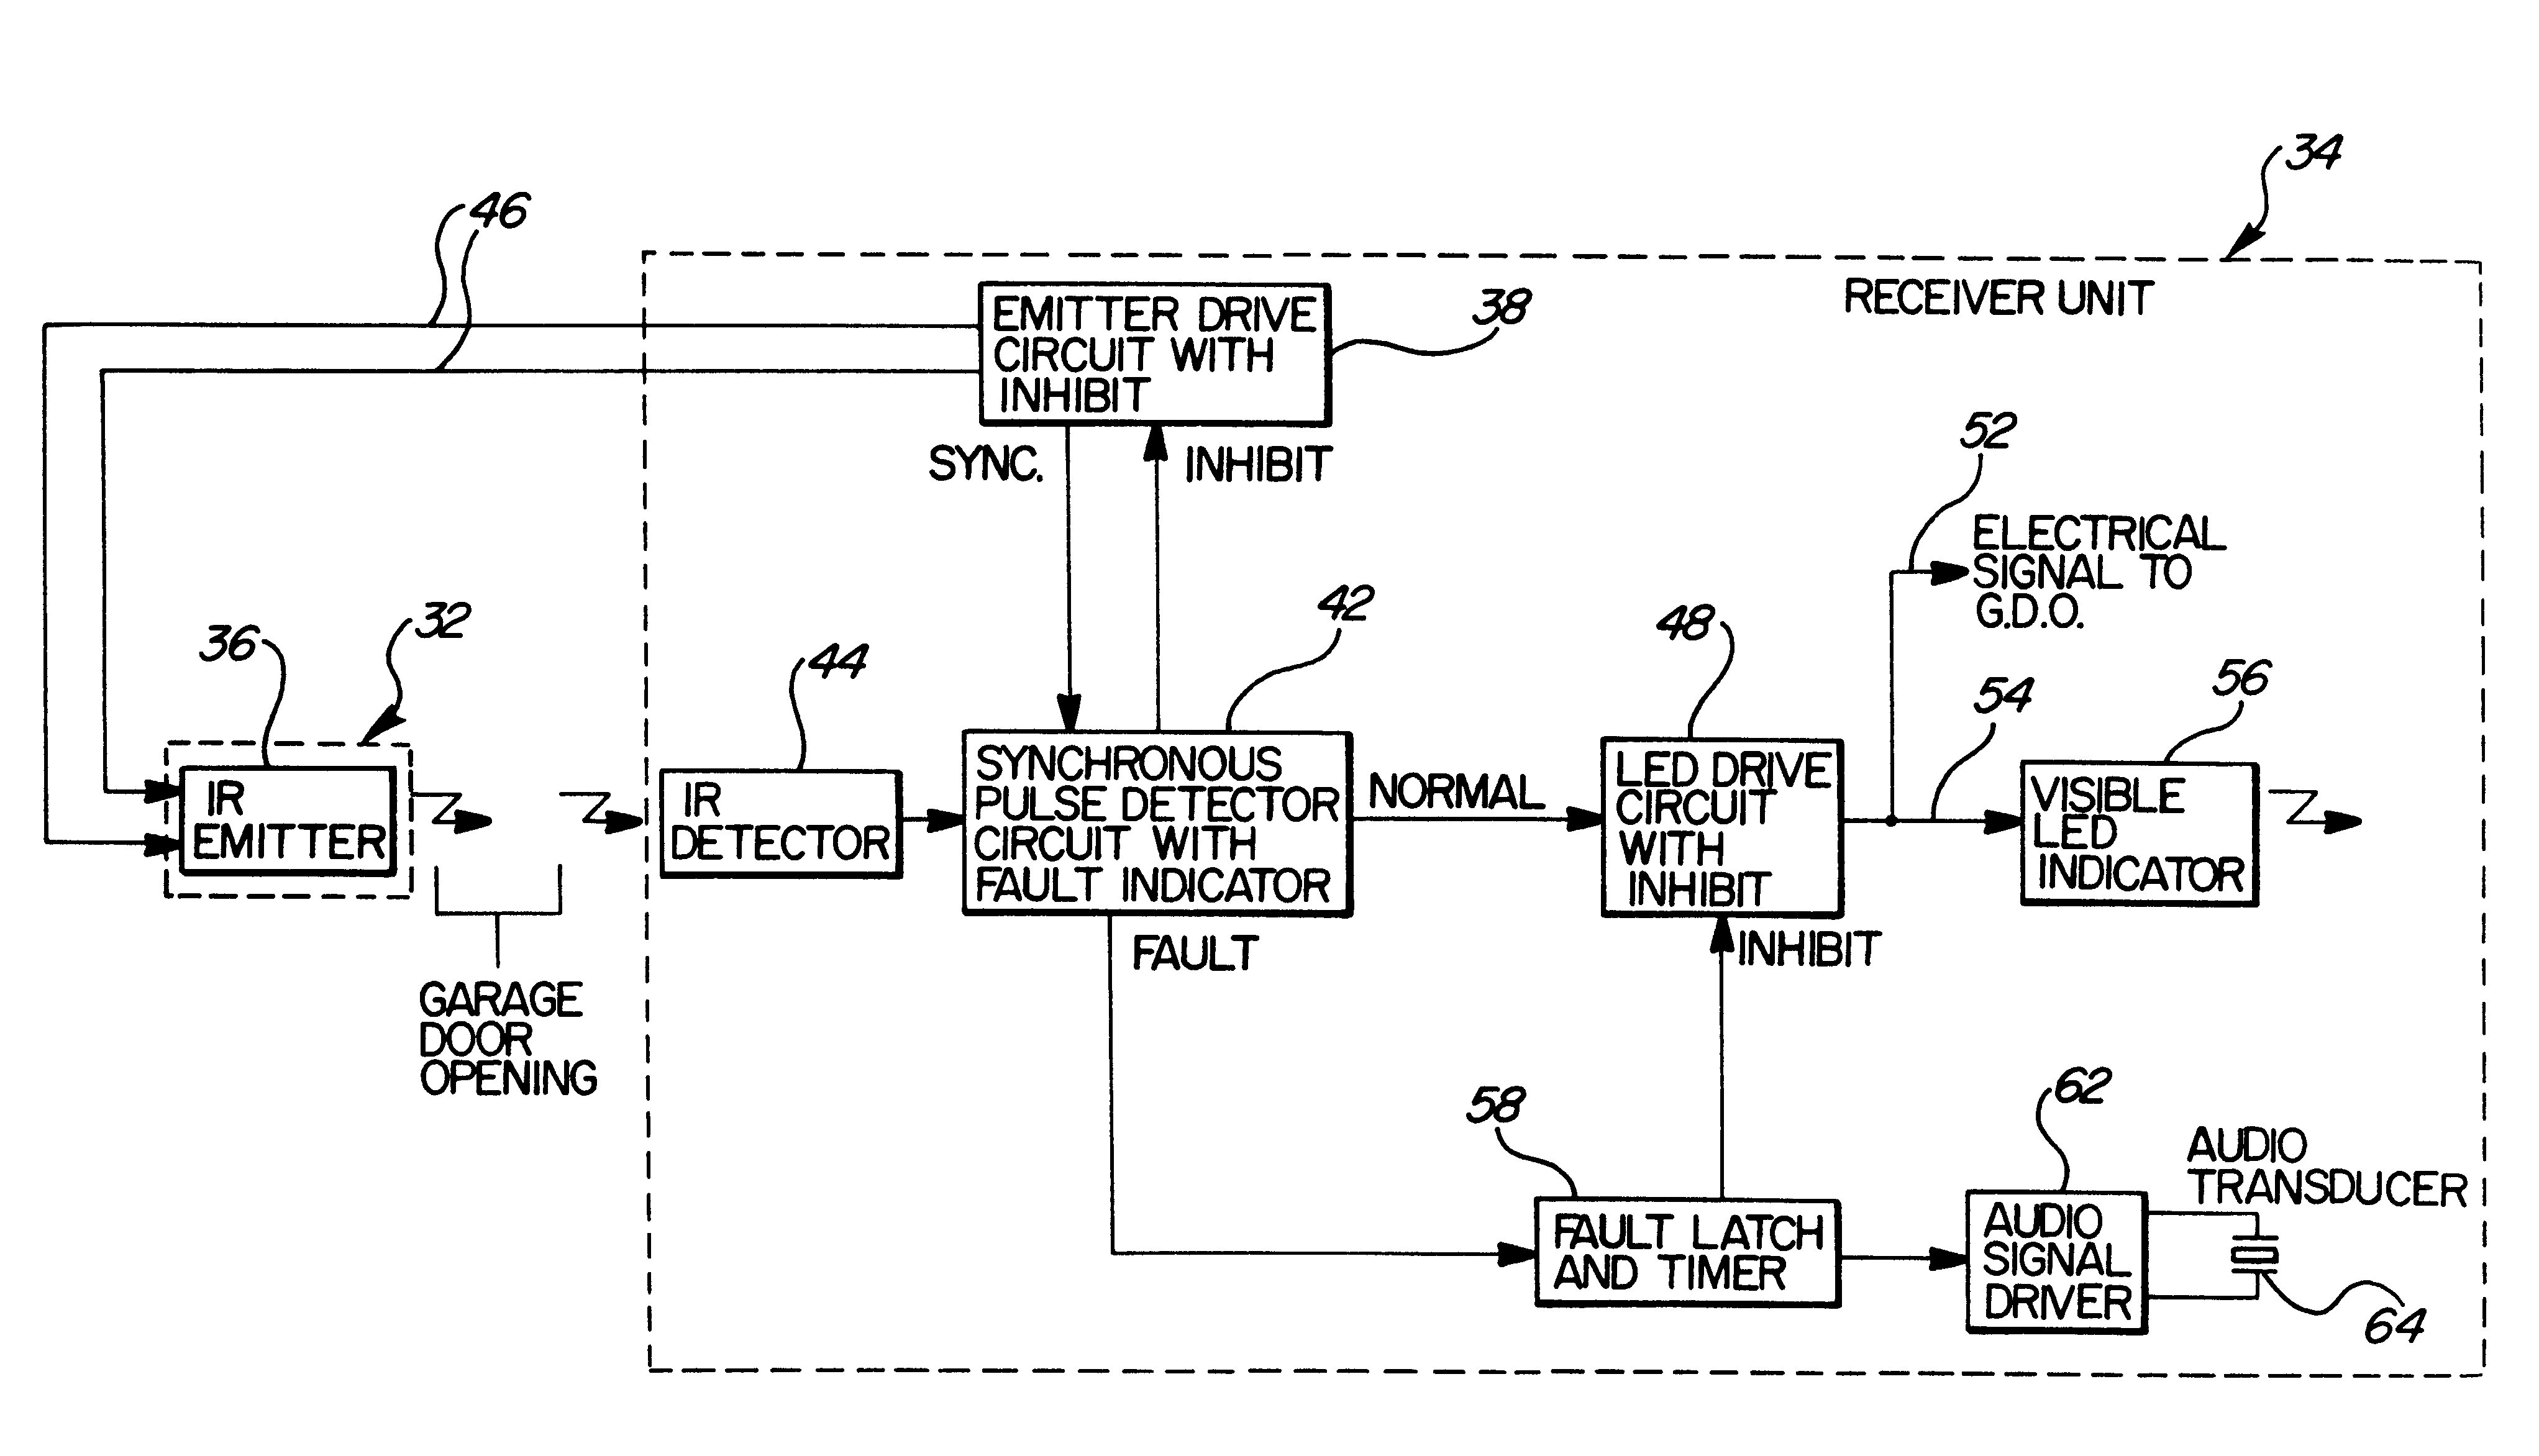 How to Wire A Garage Diagram Elegant How to Wire A Garage Diagram Diagram Of How to Wire A Garage Diagram